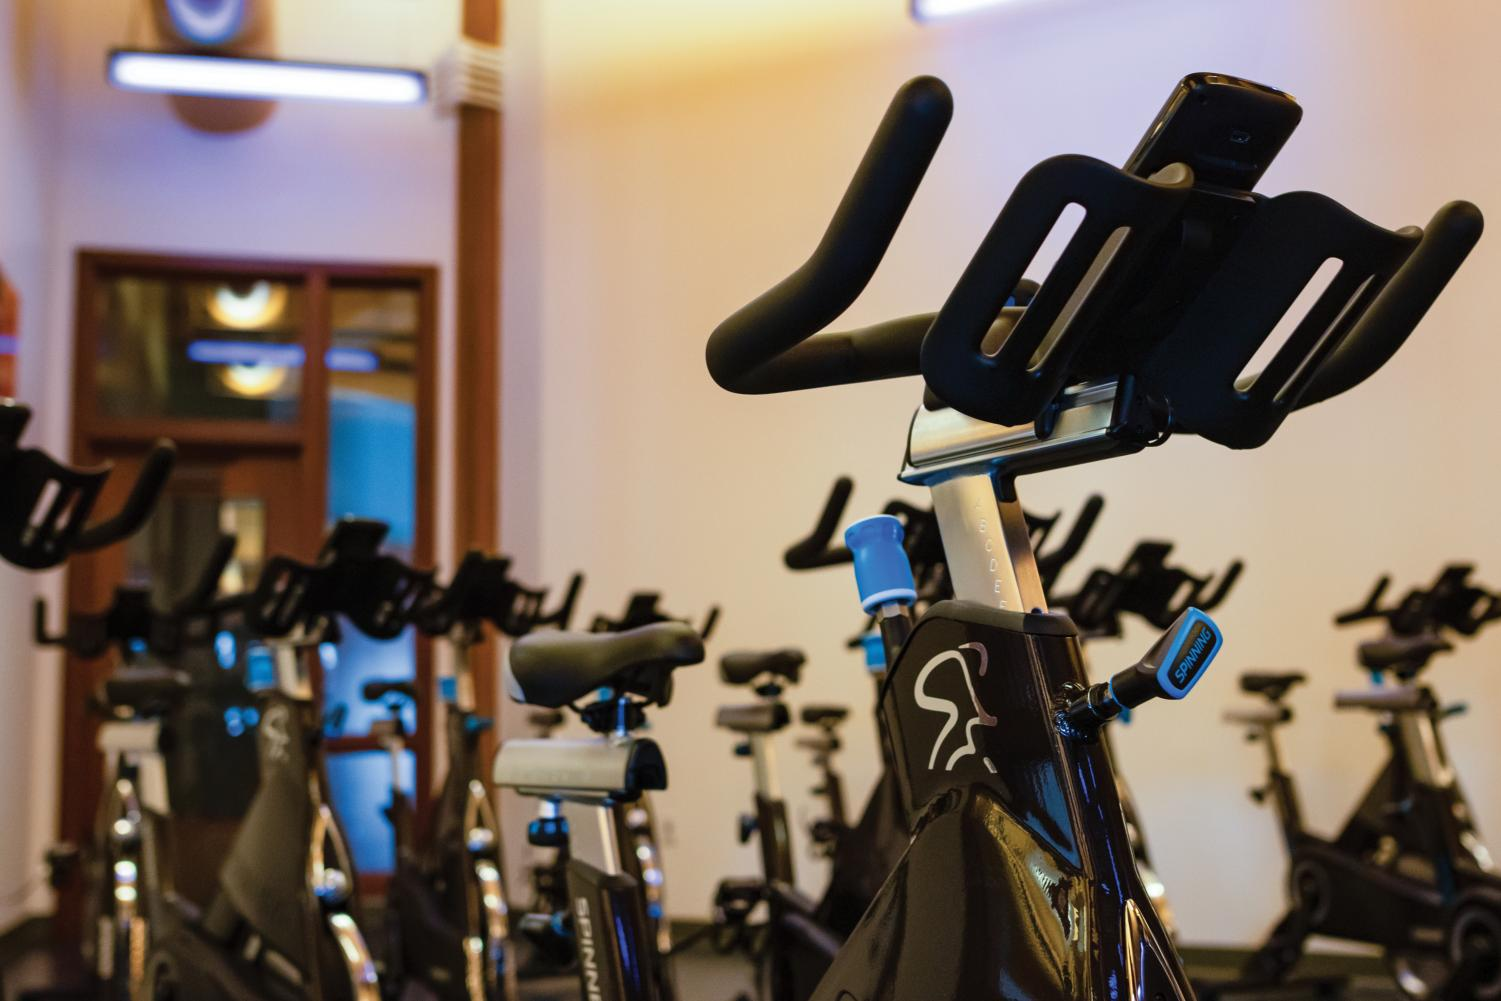 Twenty-nine new cardio machines with Bluetooth capabilities were installed.